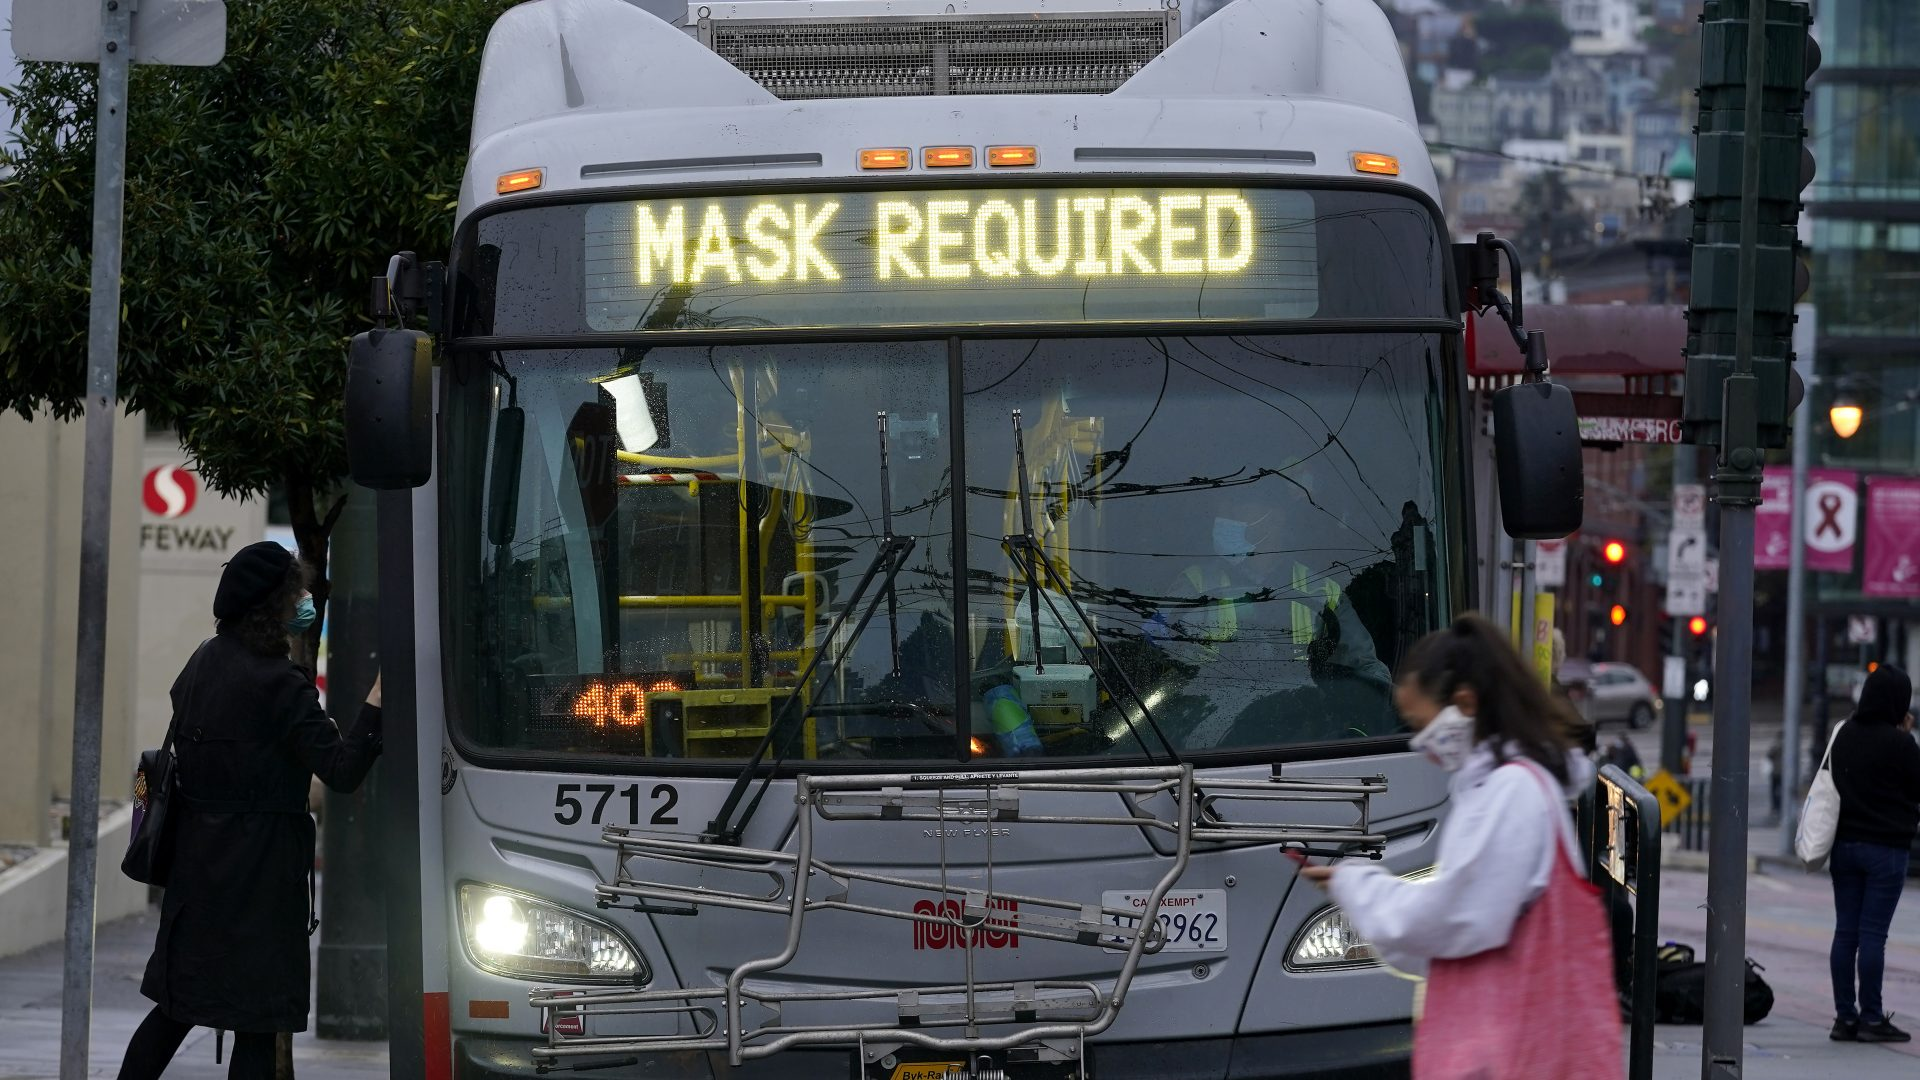 A sign on a San Francisco bus advises that passengers are required to wear masks. Health officials have renewed pleas for Americans to protect themselves and others from the coronavirus as the death toll passes 250,000.